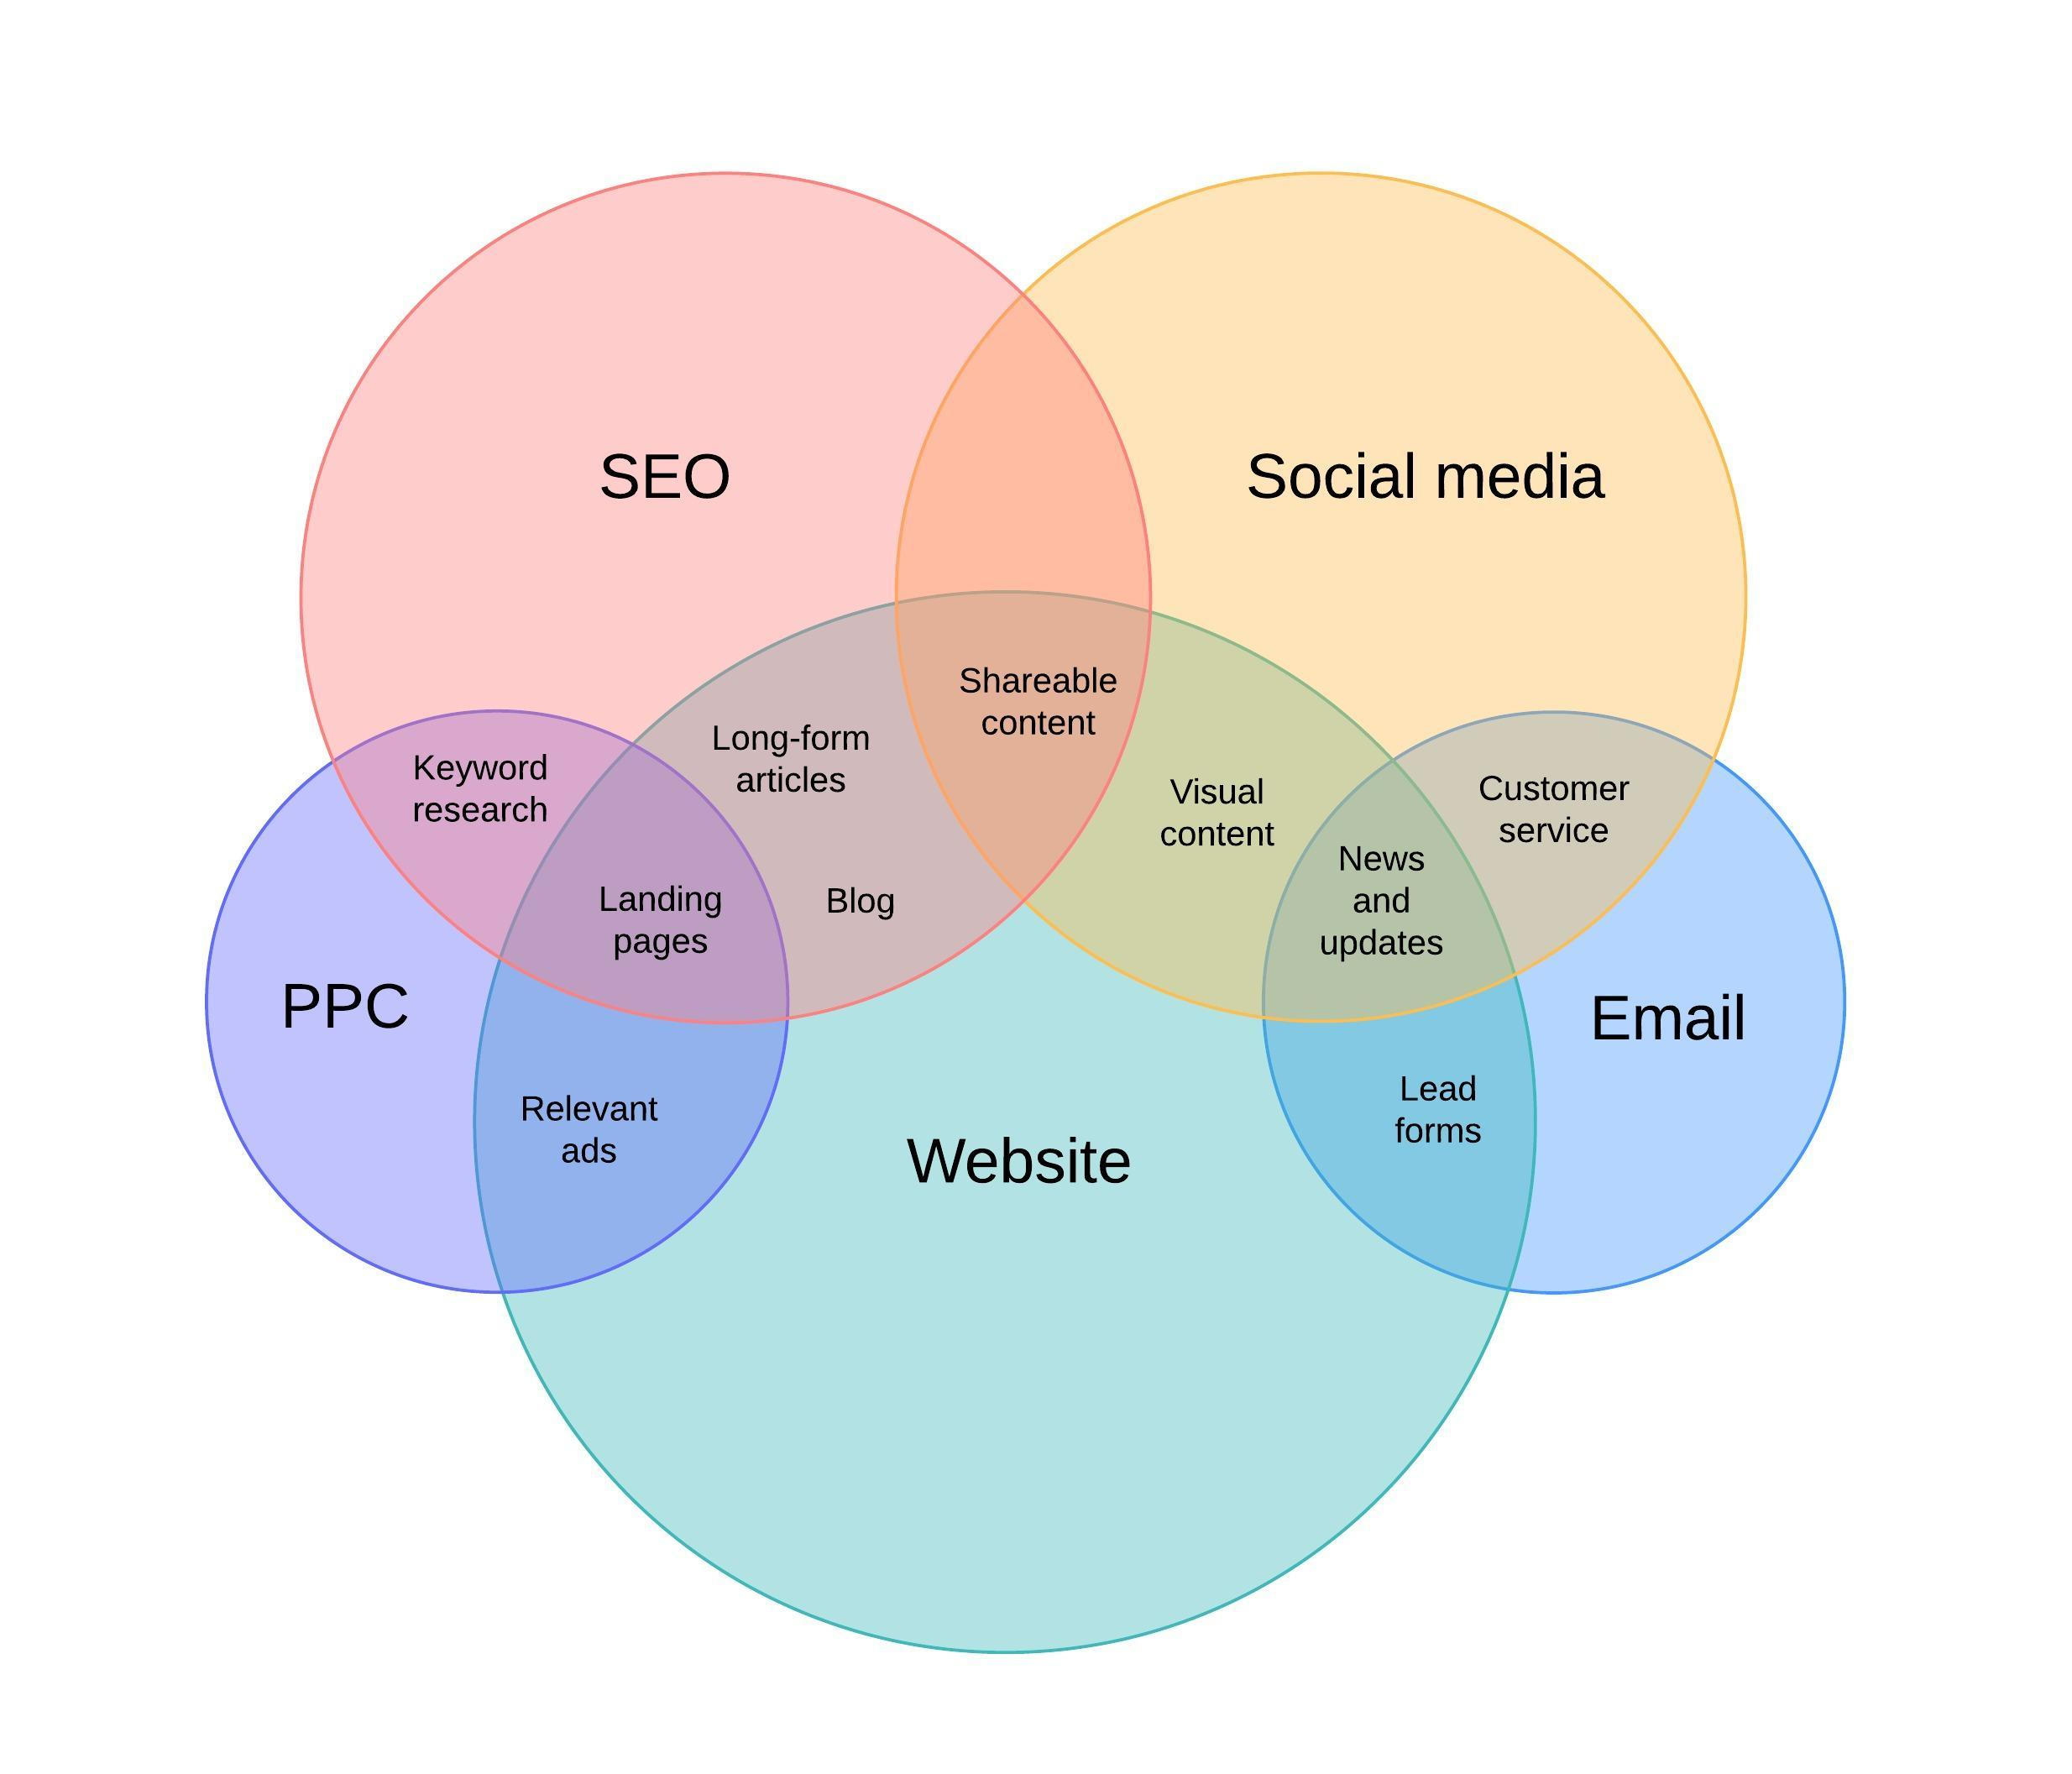 Modèle de diagramme de Venn pour le marketing digital